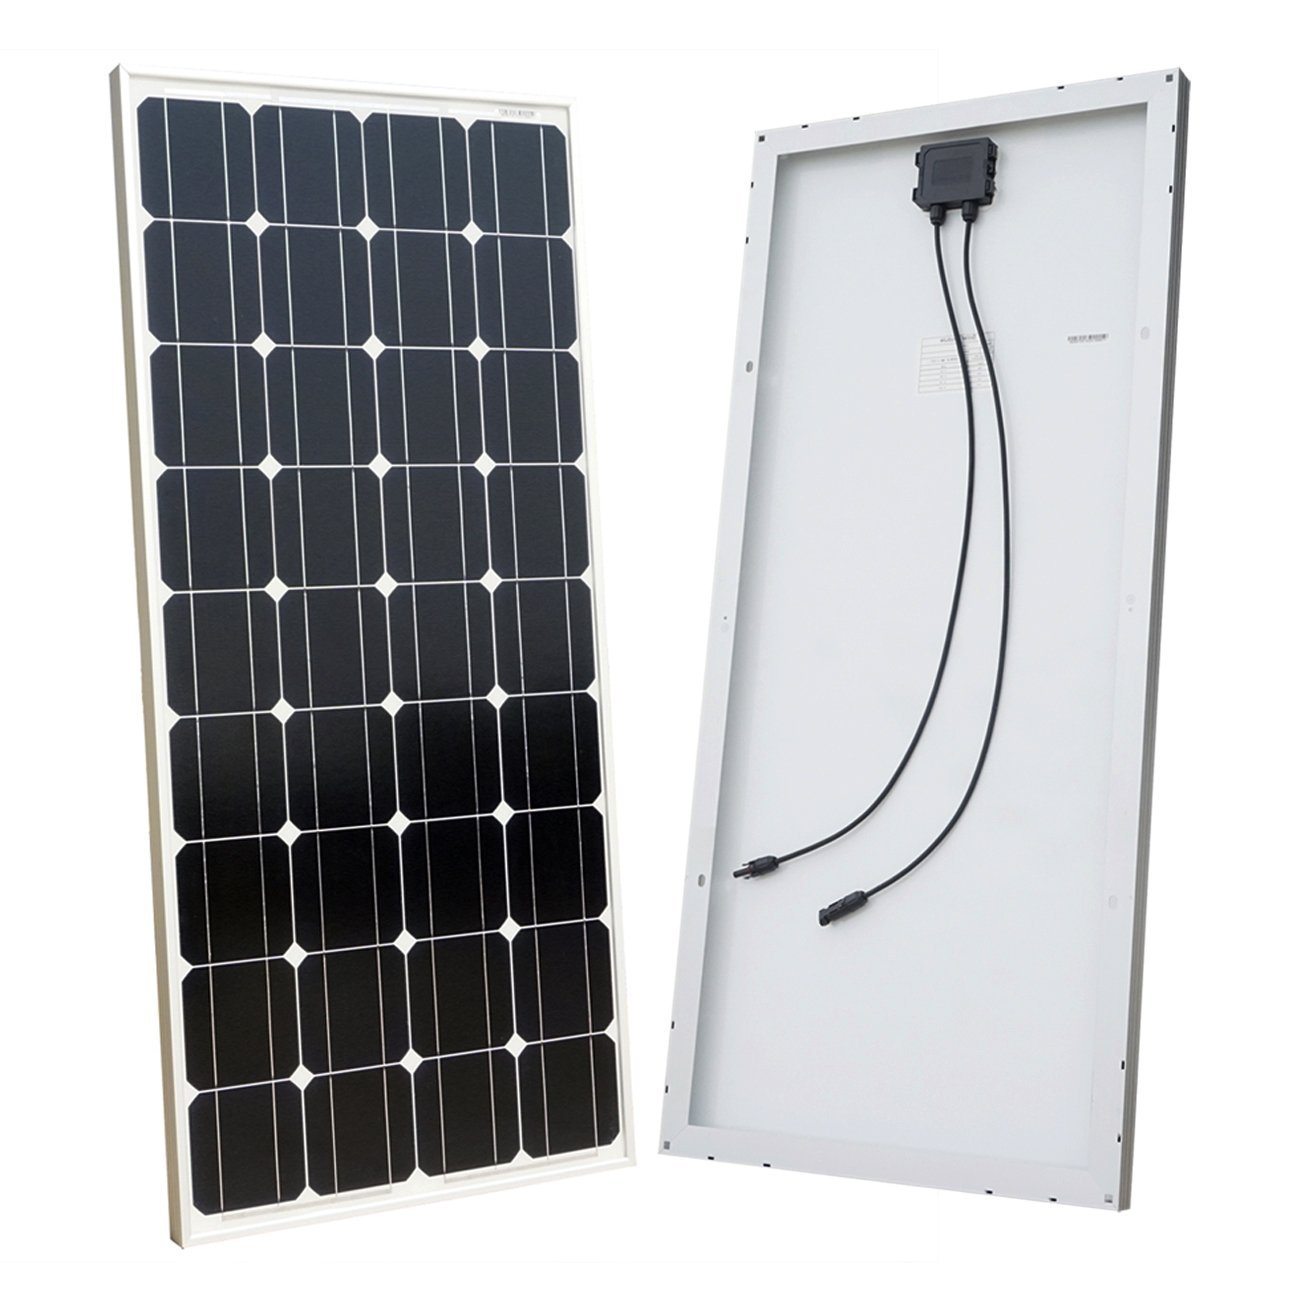 ECO-WORTHY 10W Solar Panel 10 Watt 12 Volt Pv Solar Module Solar Cell for 12 Volt battery Charger L02P10-N-1